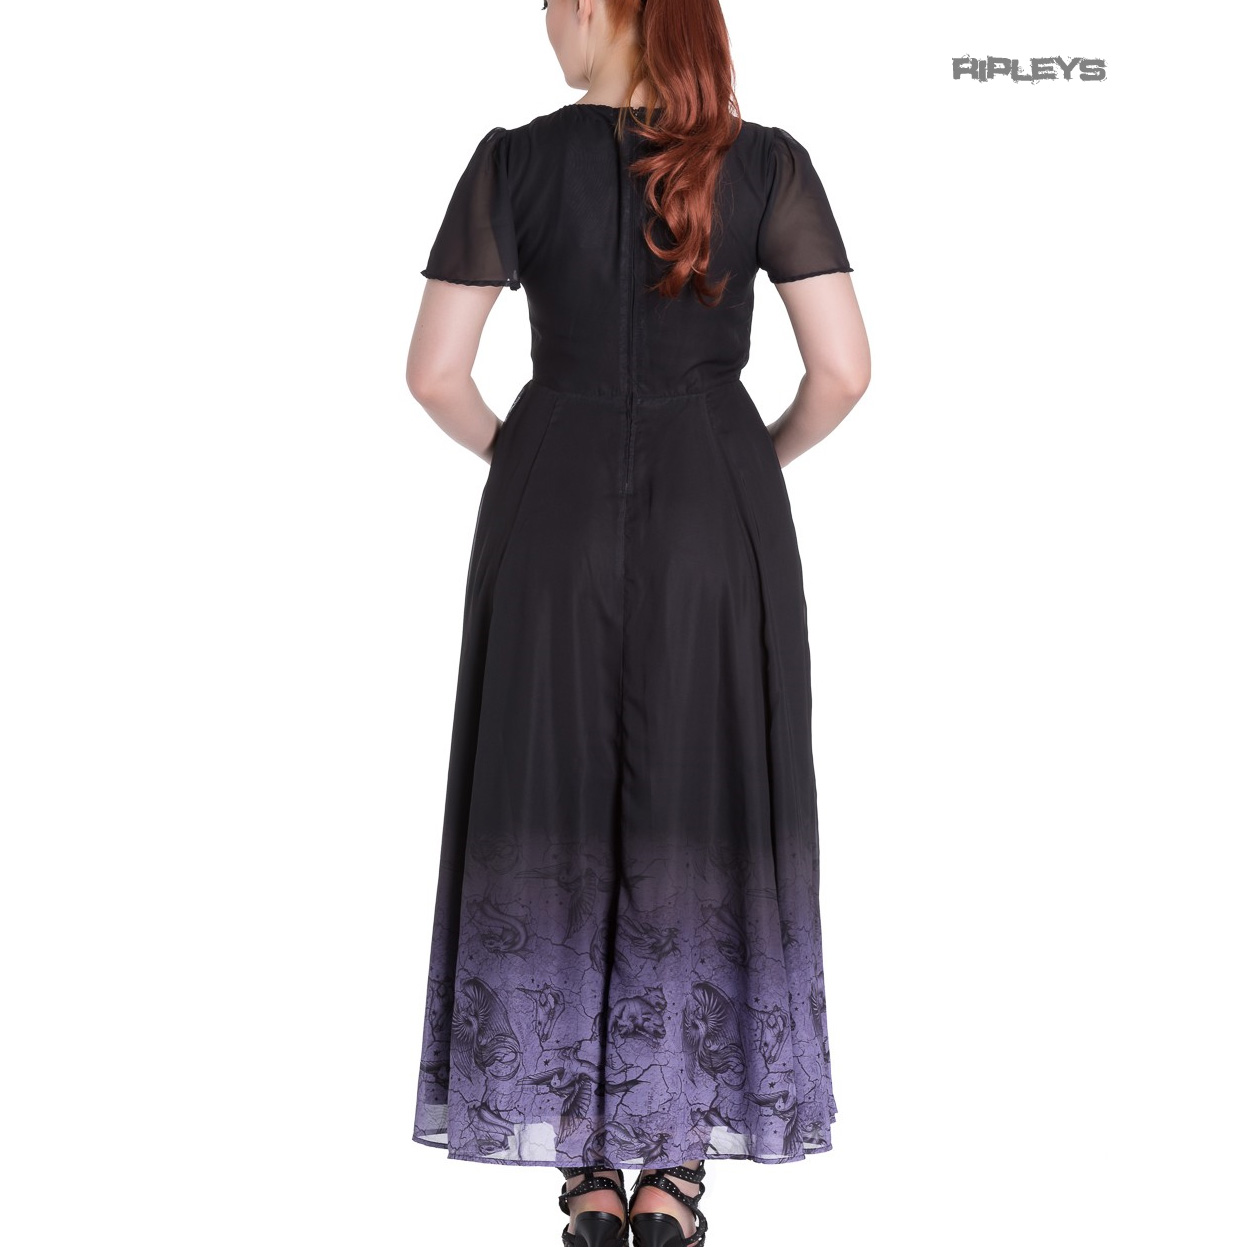 Hell-Bunny-Spin-Doctor-Goth-Maxi-Dress-EVADINE-Purple-Black-All-Sizes thumbnail 13